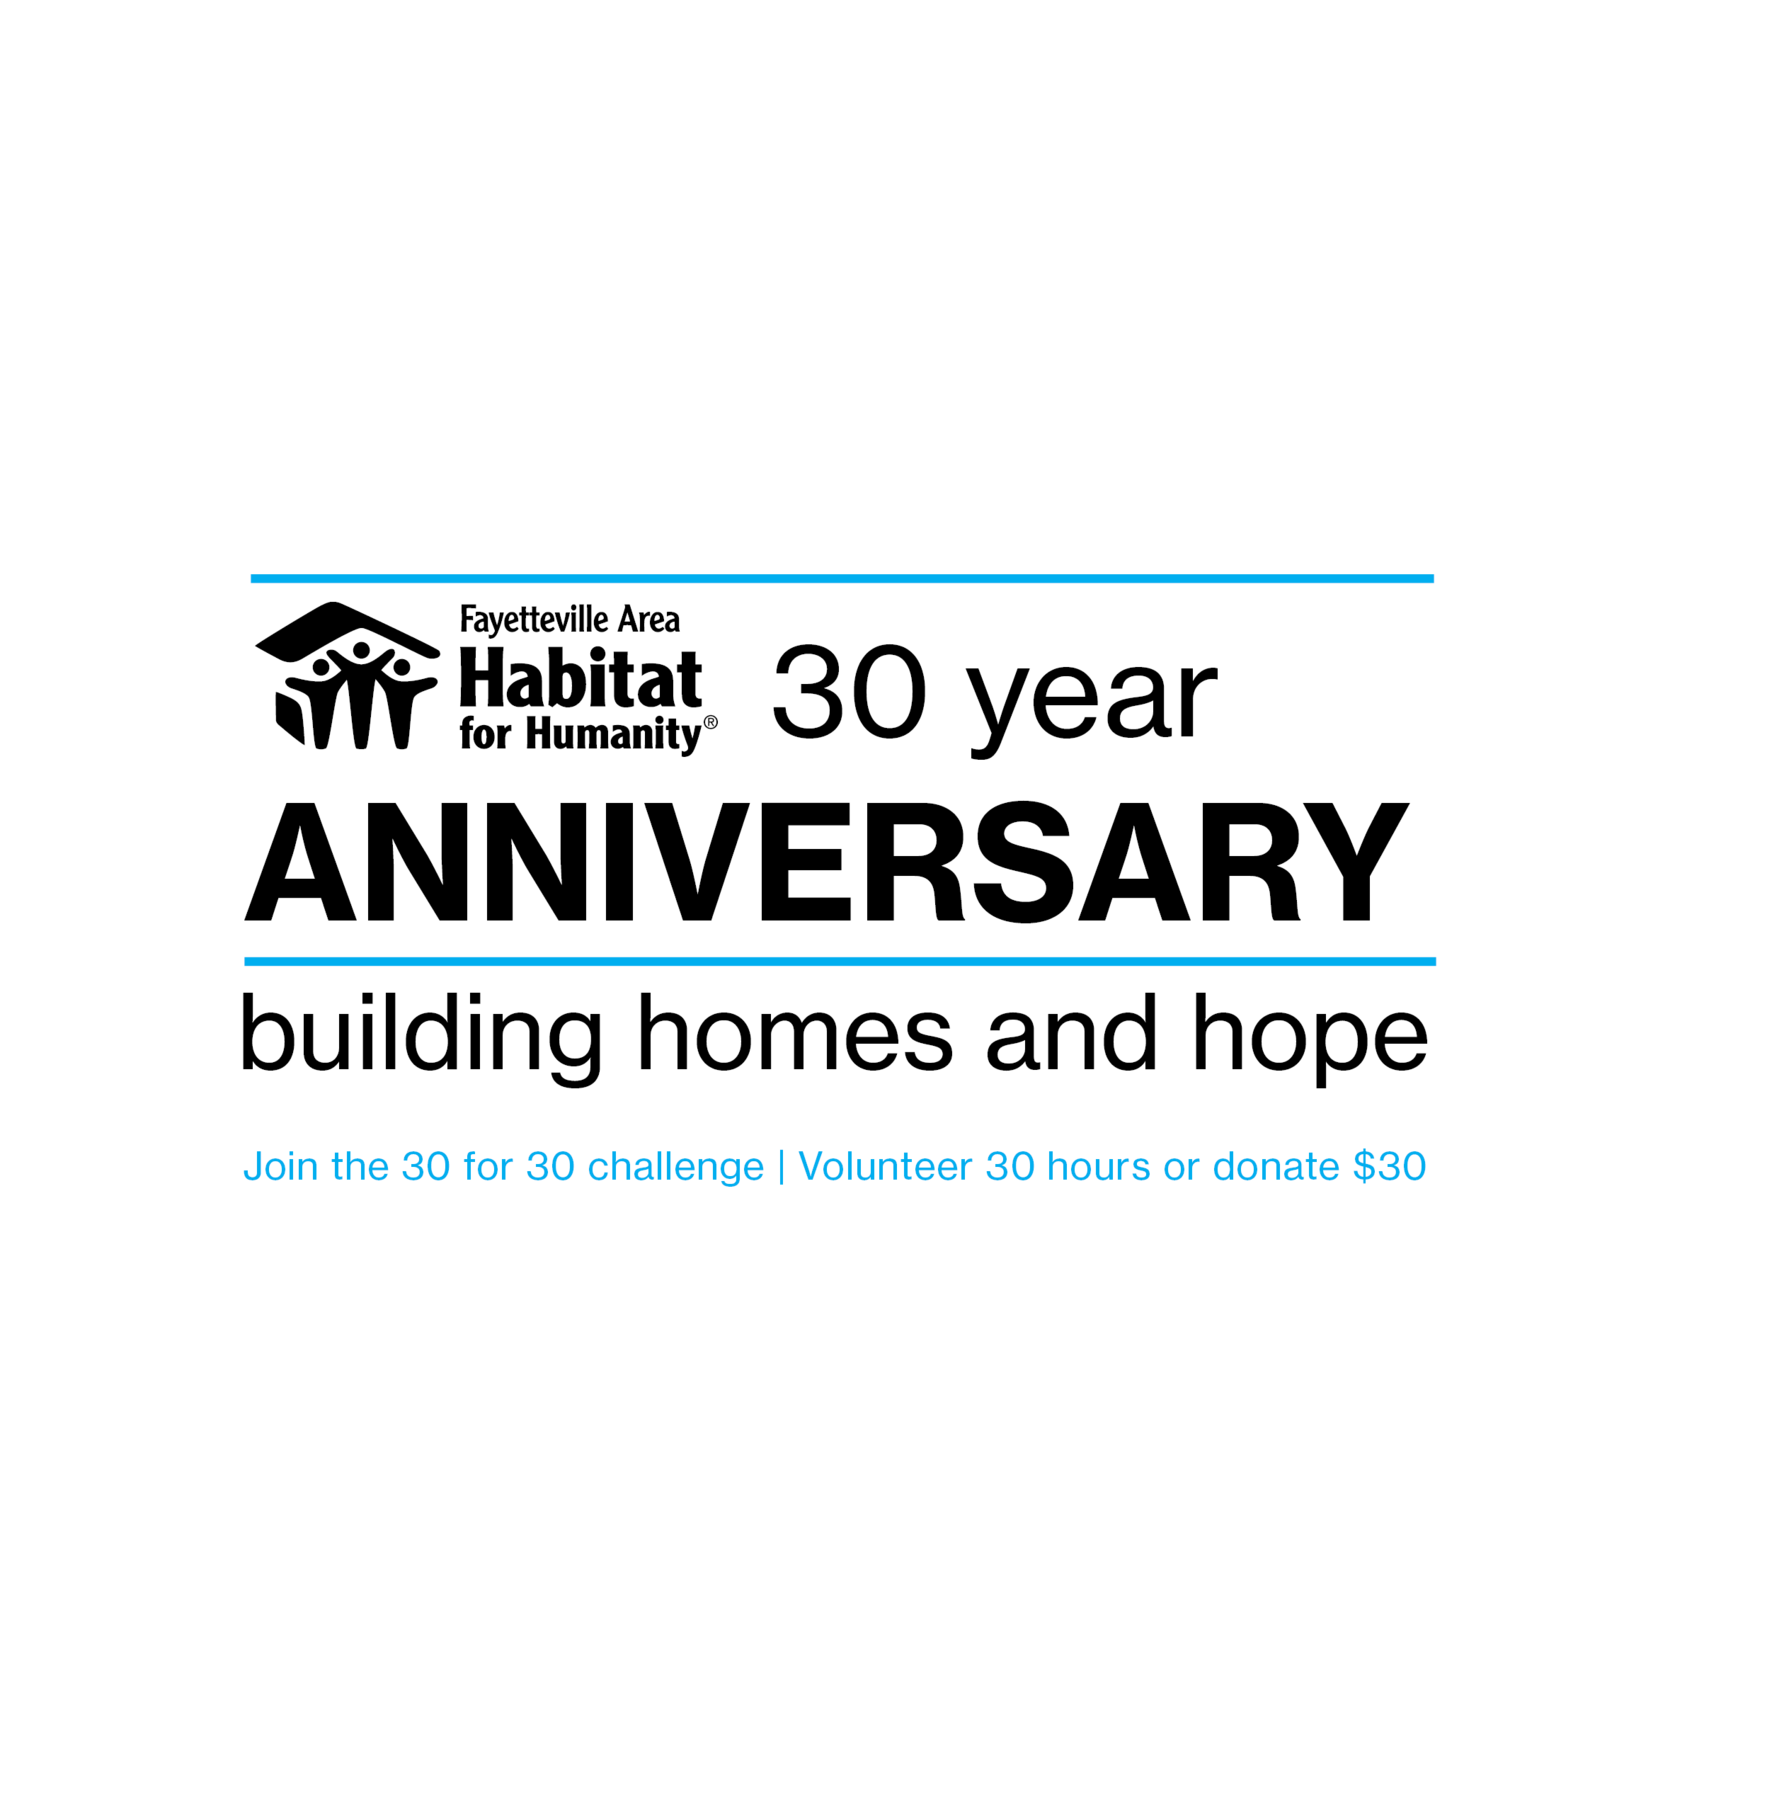 Celebrate 30 years of Habitat for Humanity in our community image